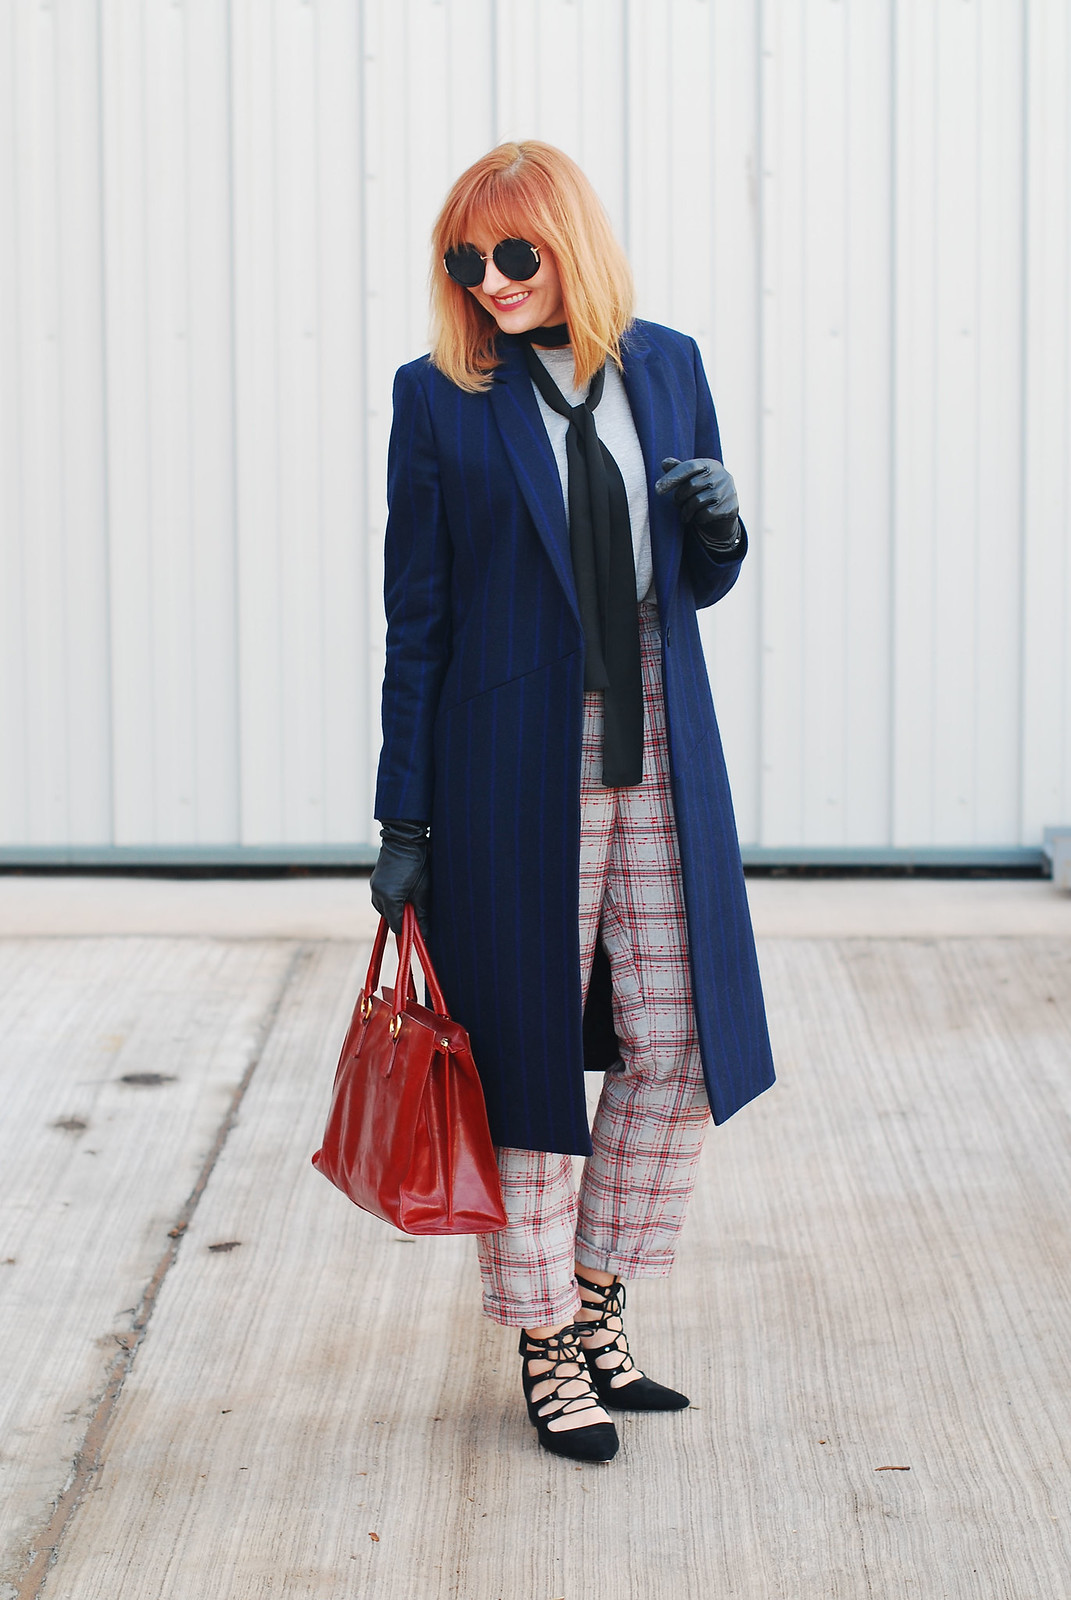 Smart autumn/winter outfit \ fall style \ long navy pinstripe coat, check trousers, heeled ghillie shoes and black skinny scarf | Not Dressed As Lamb, over 40 style